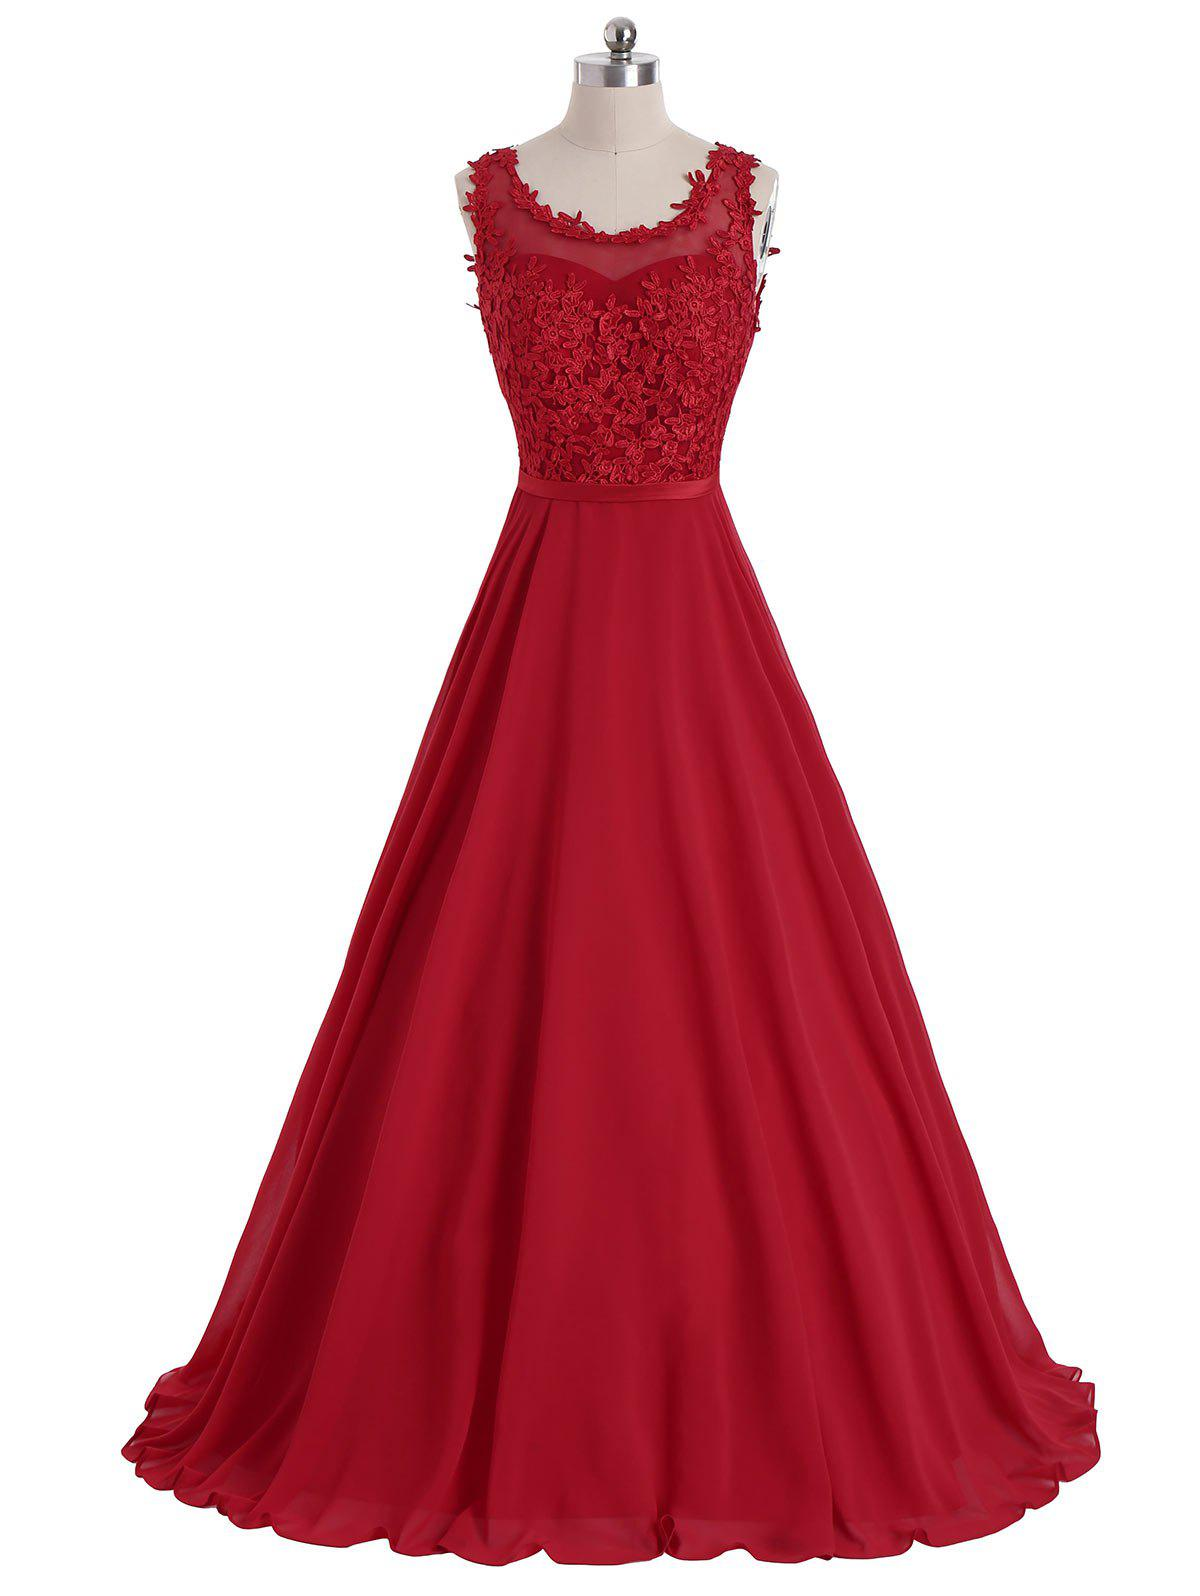 Floral Sleeveless Maxi Formal Evening Dress - RED 2XL